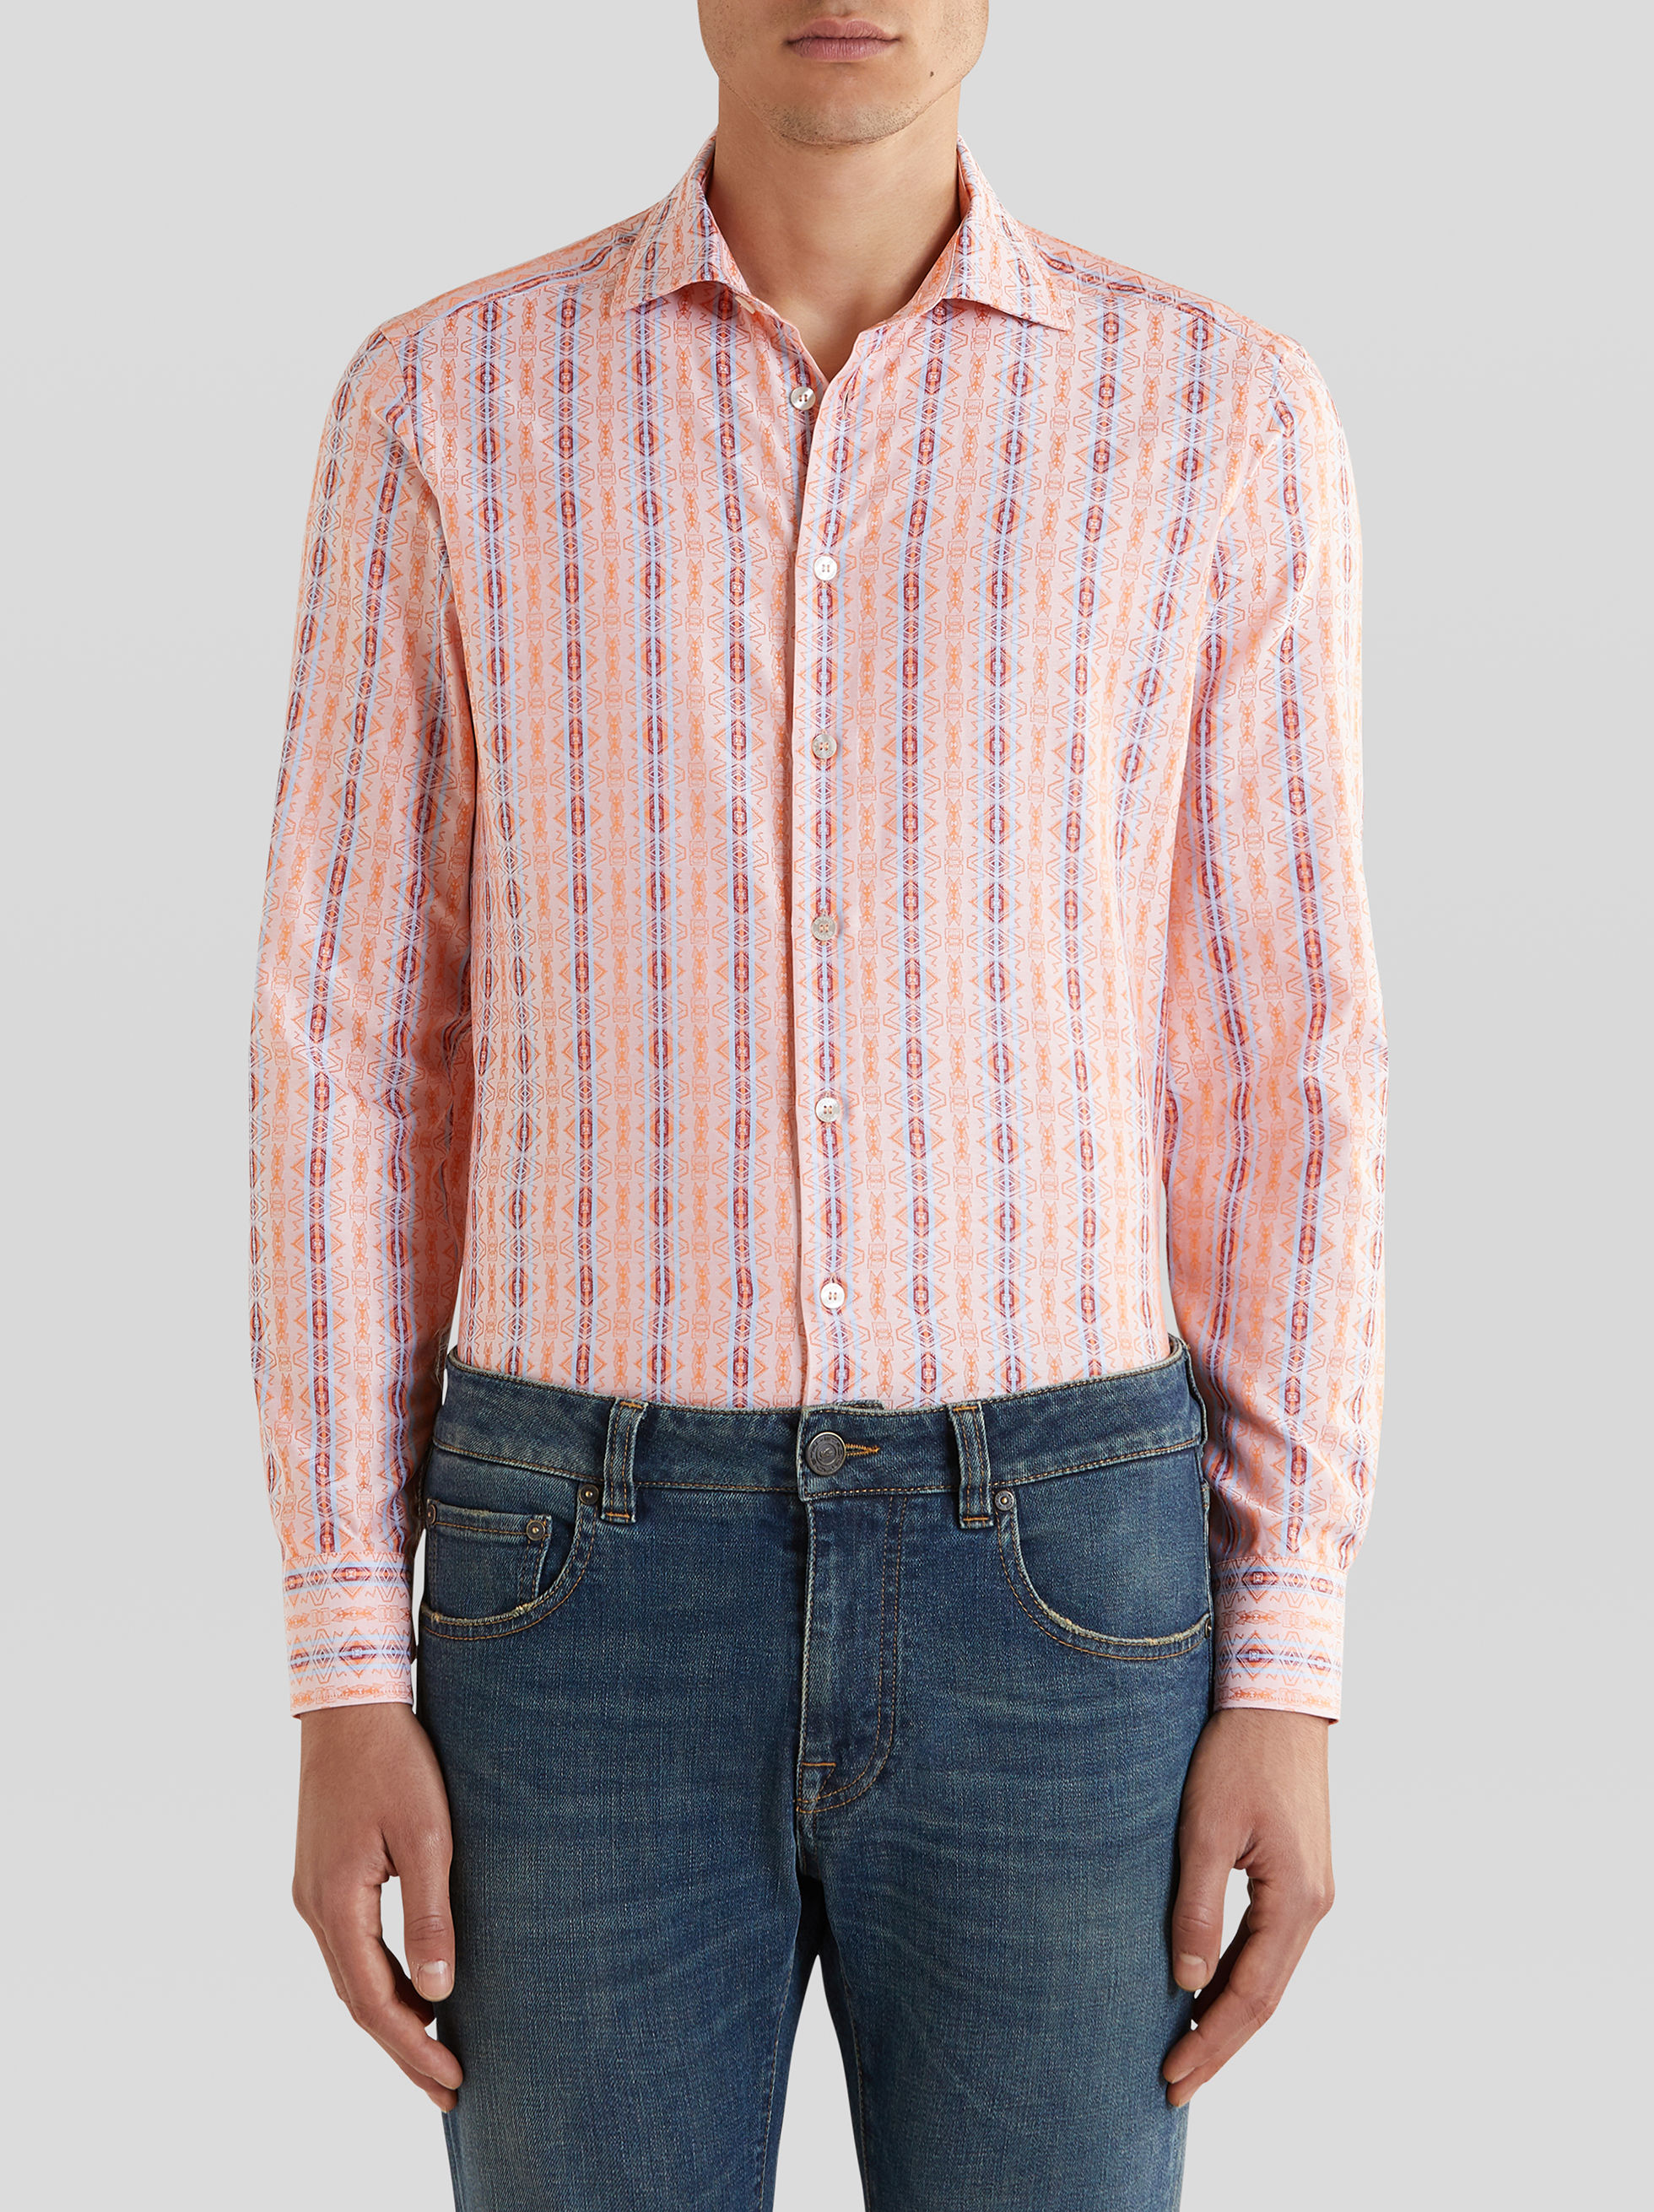 GEOMETRIC PATTERN JACQUARD SHIRT